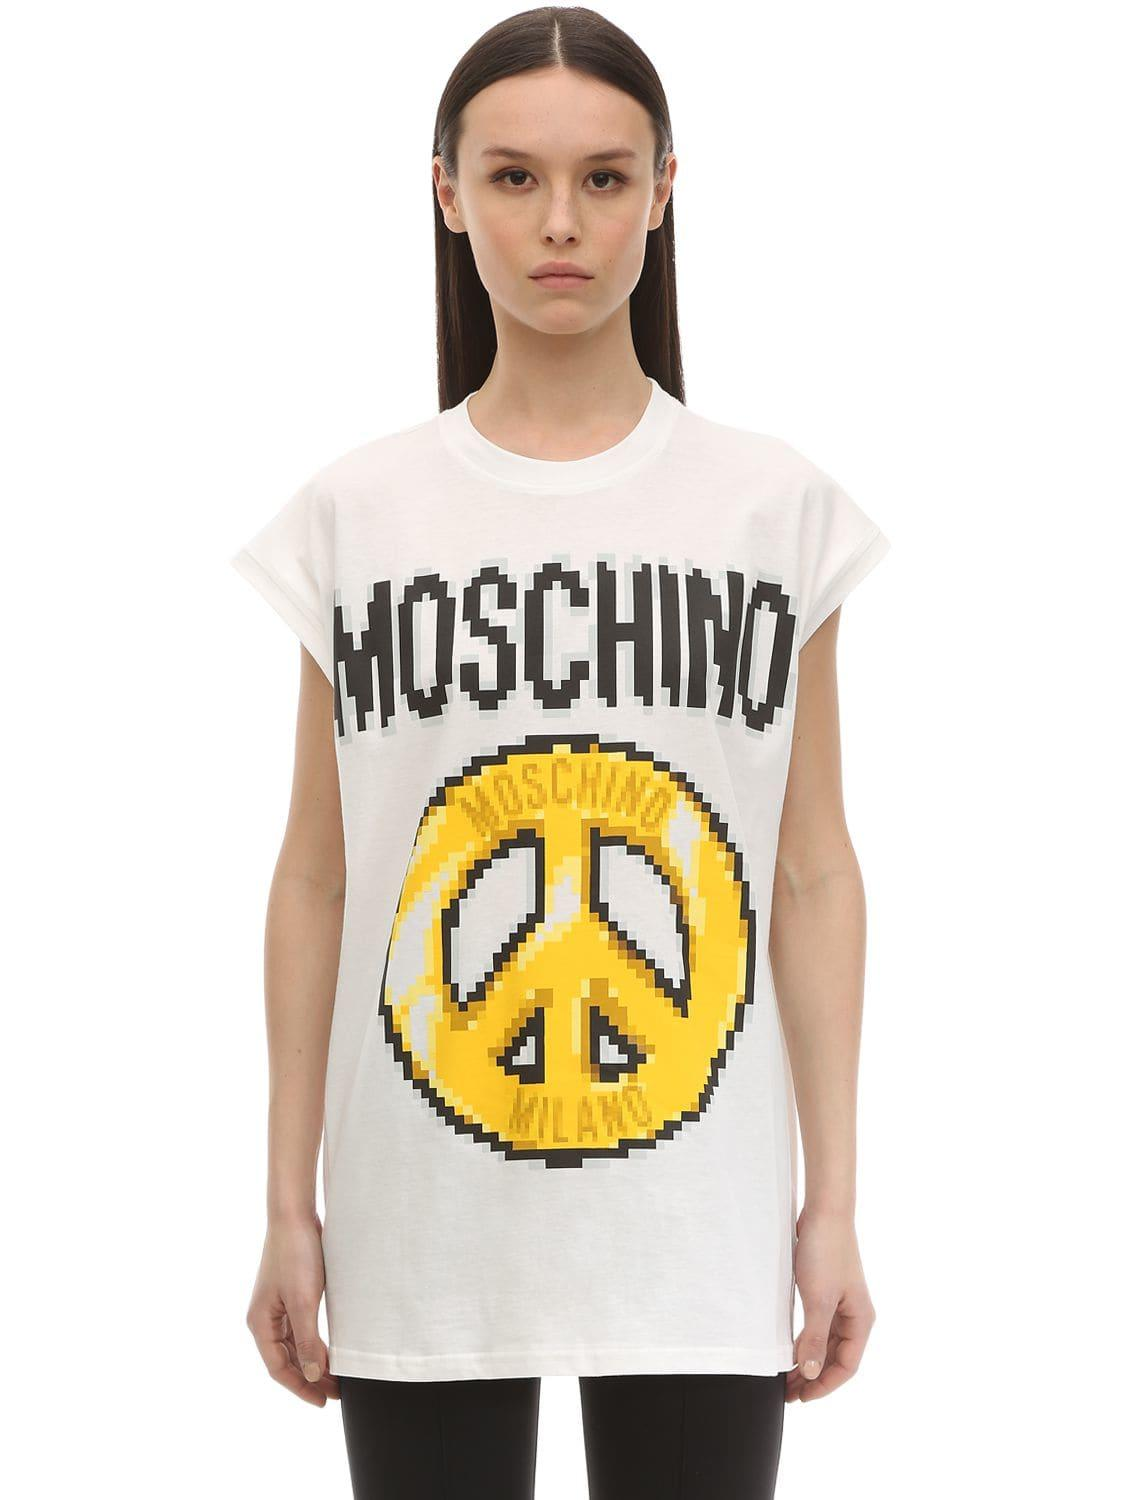 c5a886534a9ed Moschino - White Sleeveless Printed Cotton Jersey T-shirt - Lyst. View  fullscreen